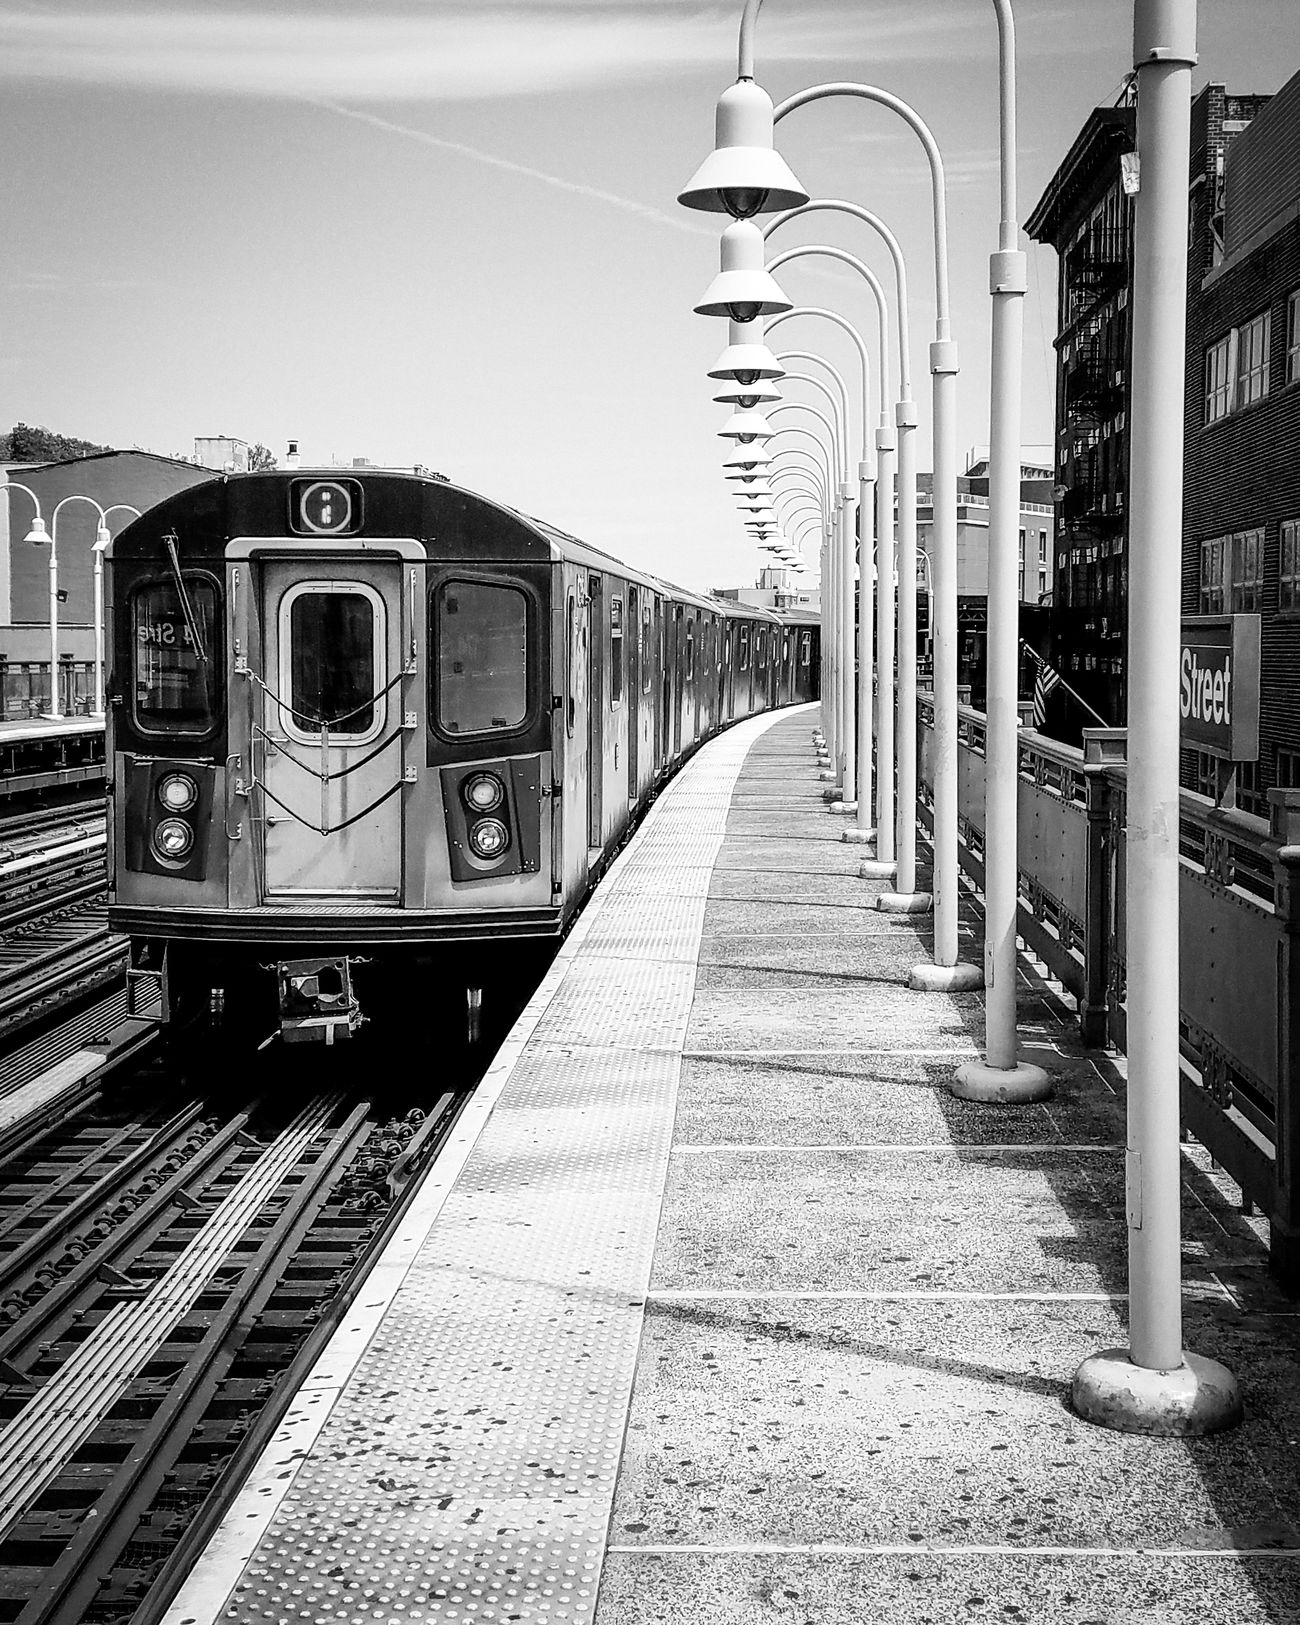 Bronx trains are the best! Rail Transportation Railroad Track Train - Vehicle Railroad Station Transportation Mode Of Transport Public Transportation Railroad Station Platform Subway Train Outdoors New York City Photography BronxNYC EyeEyem Bronx NYC Photography Urban Lifestyle EyeEmBestPics City Life Street Photo Streetphotography Spring 2017 Full Frame Shootermag_usa Mobile Photography NYC